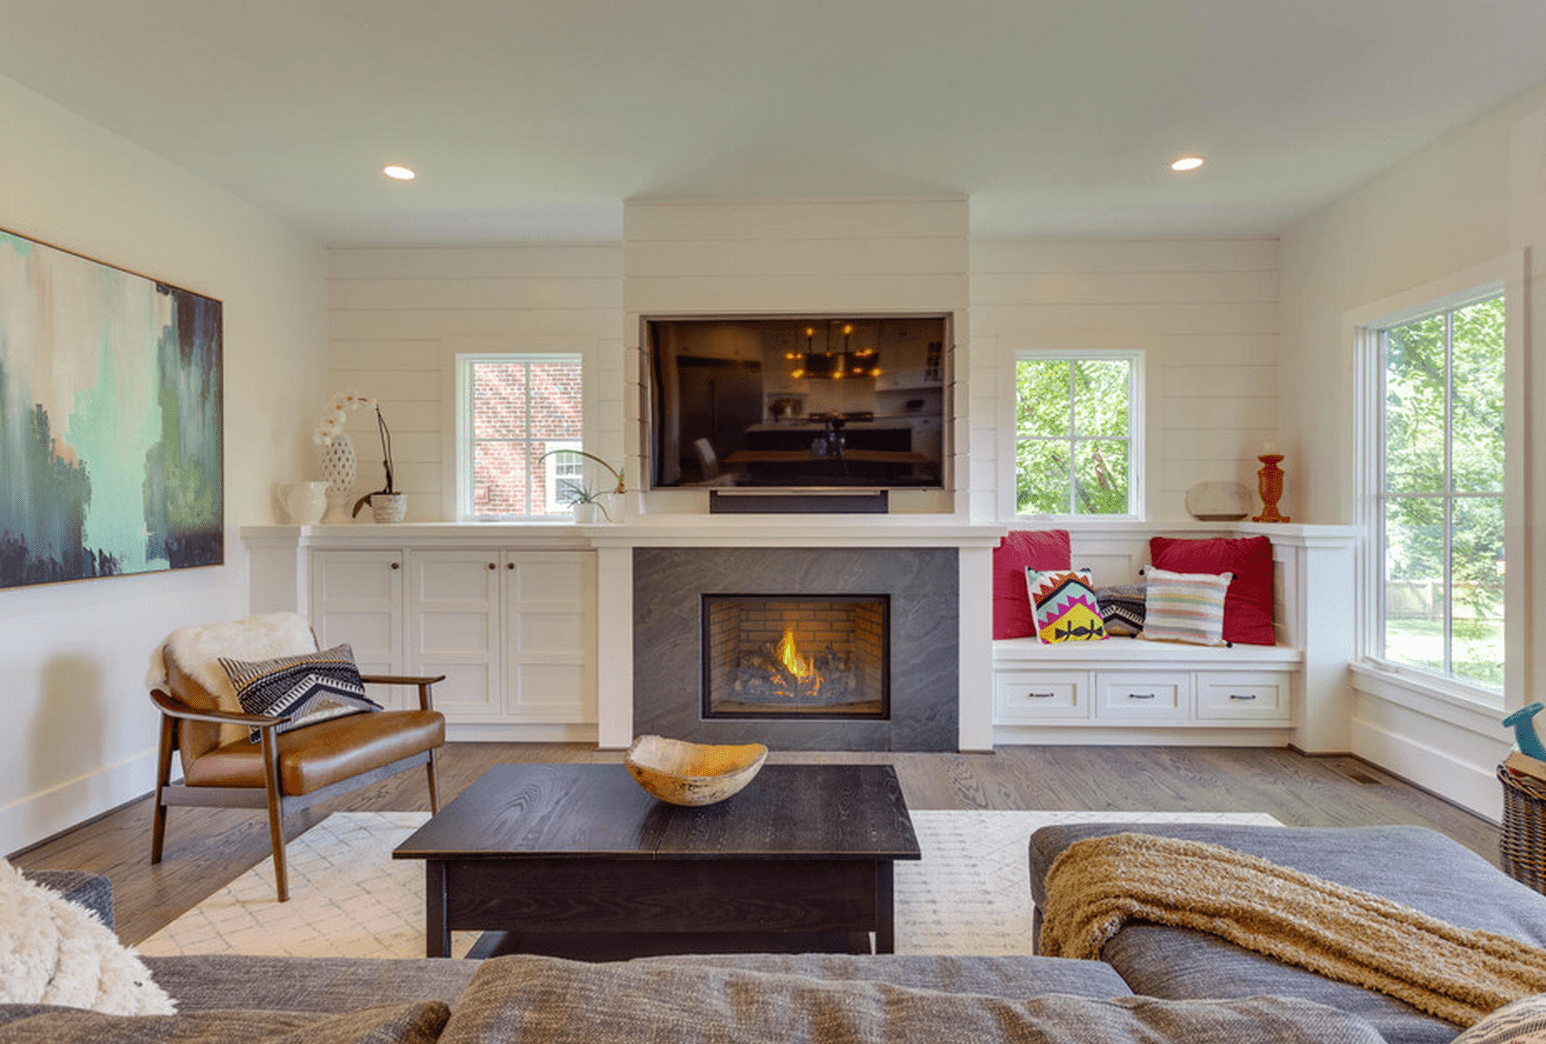 Luxury Fireplace with Cabinets On Either Side